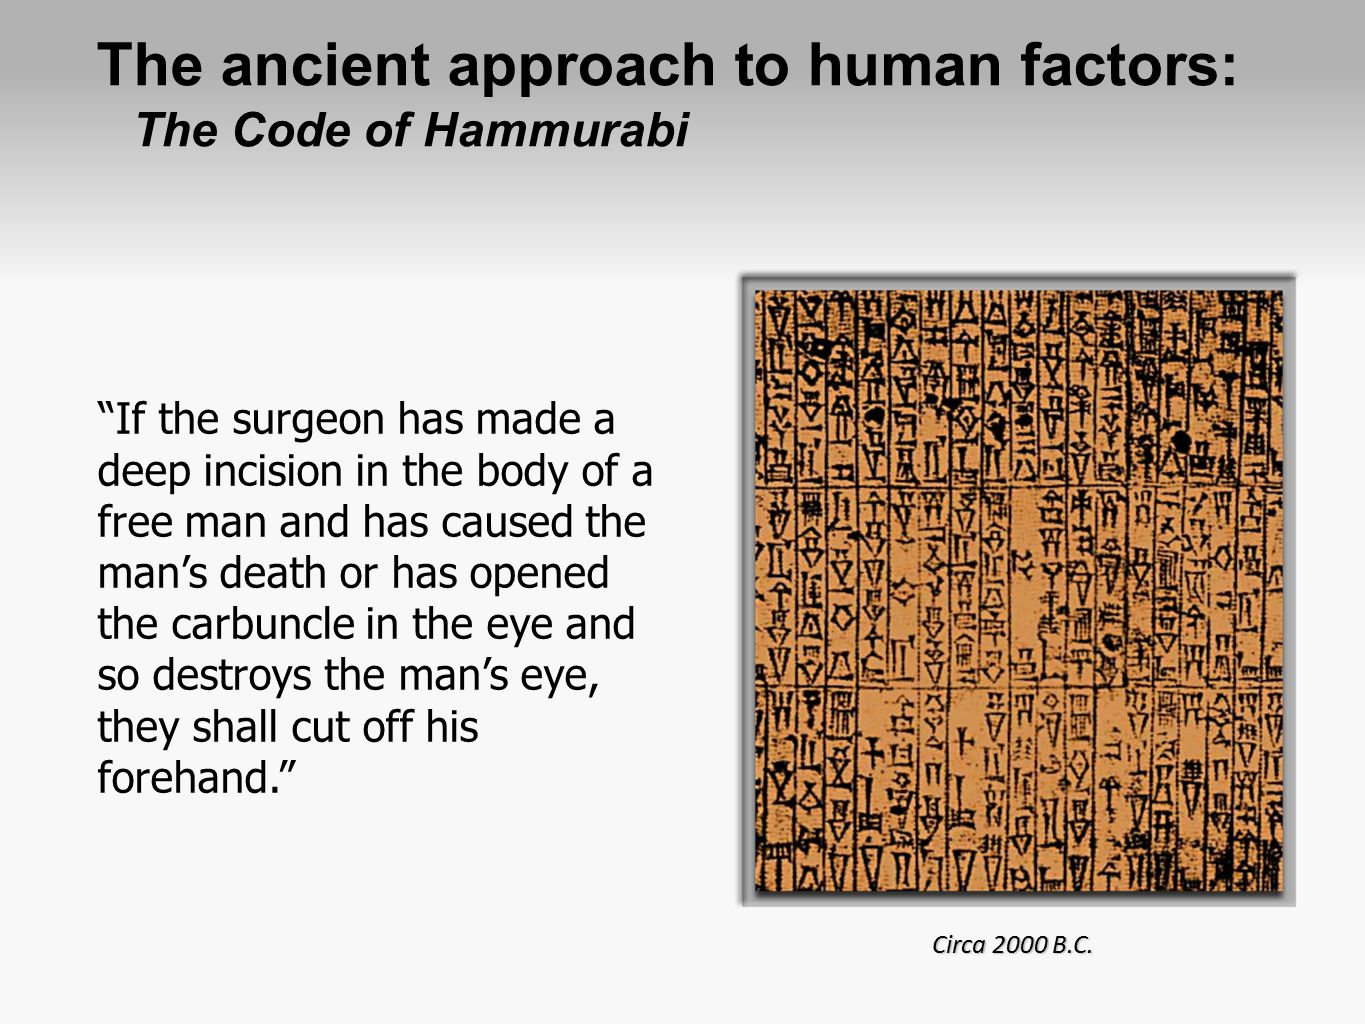 The ancient approach to human factors: The Code of Hammurabi